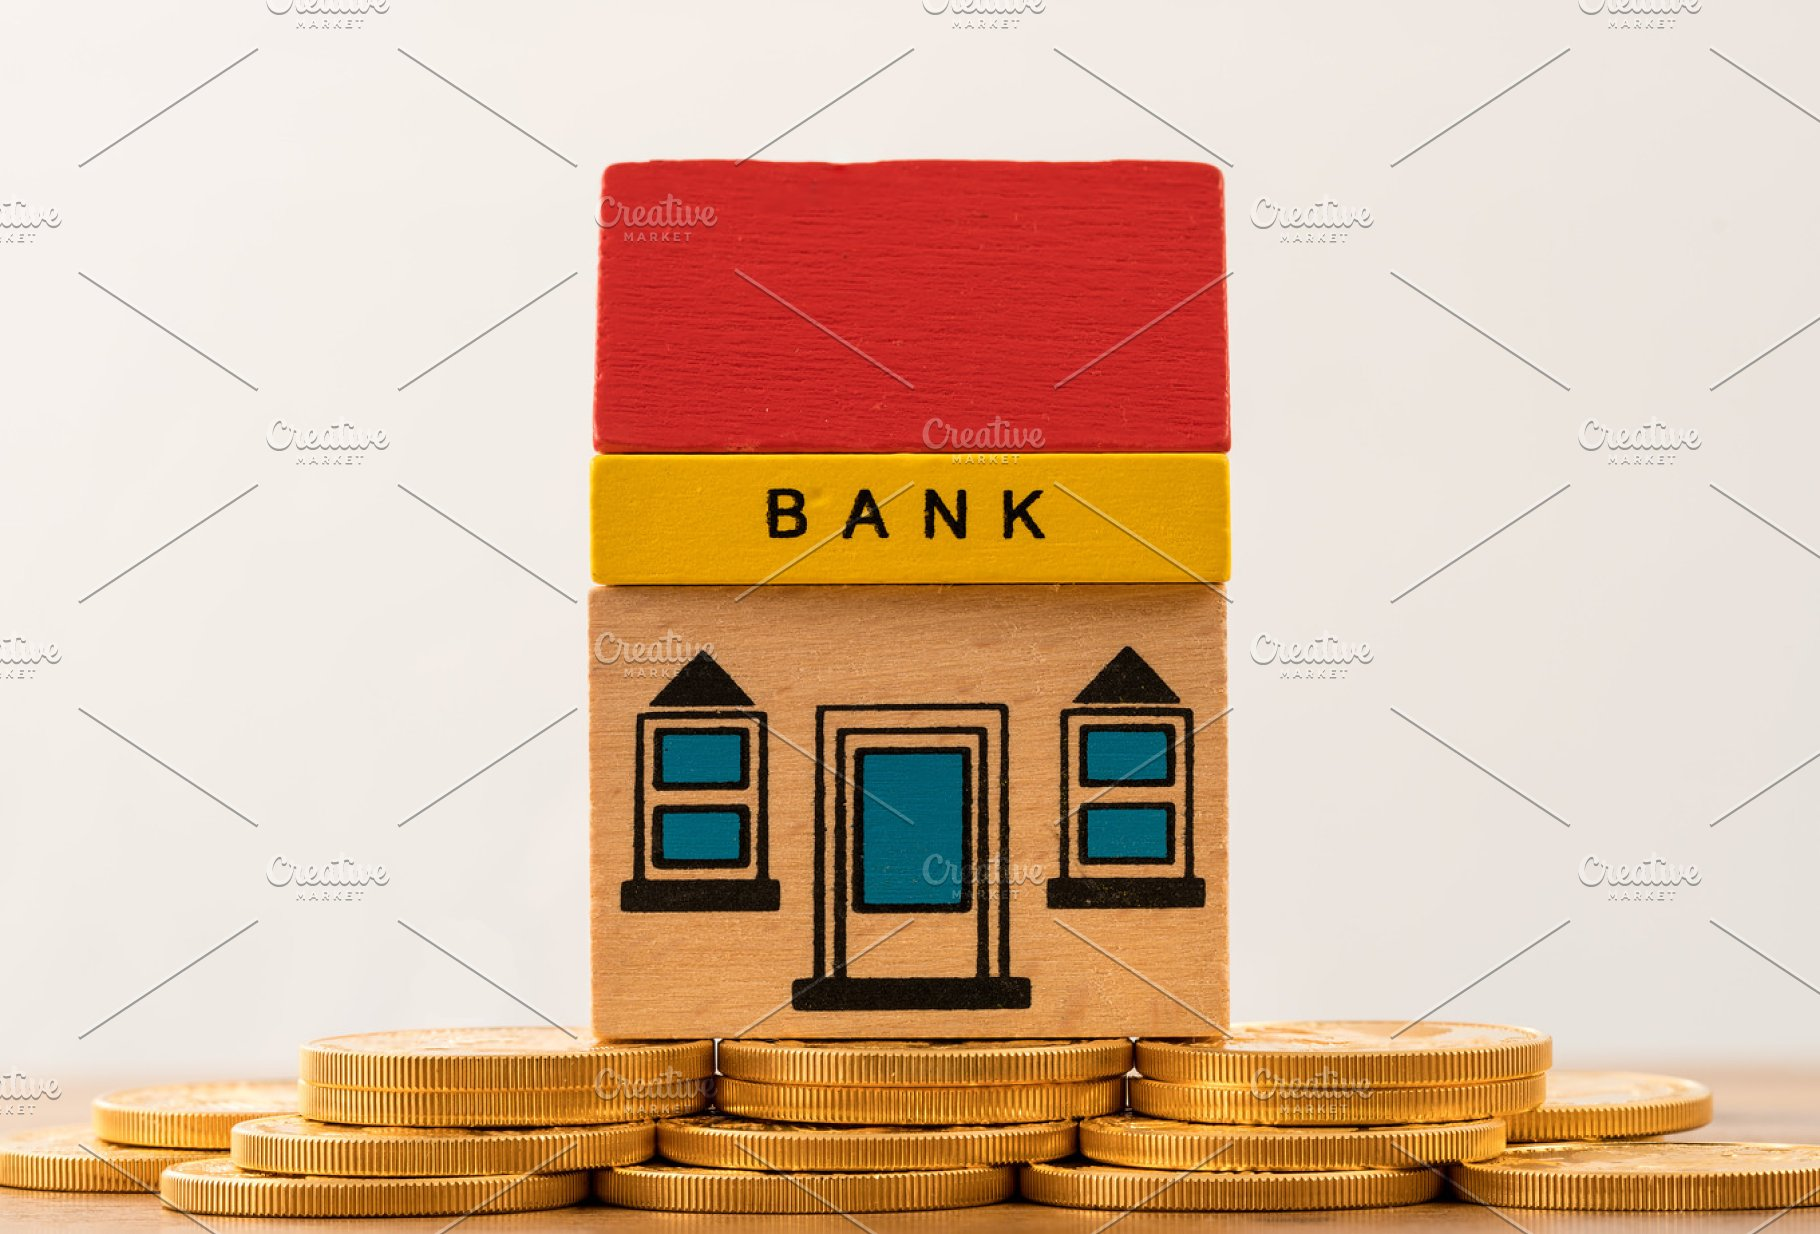 Toy bank building on gold coin assets